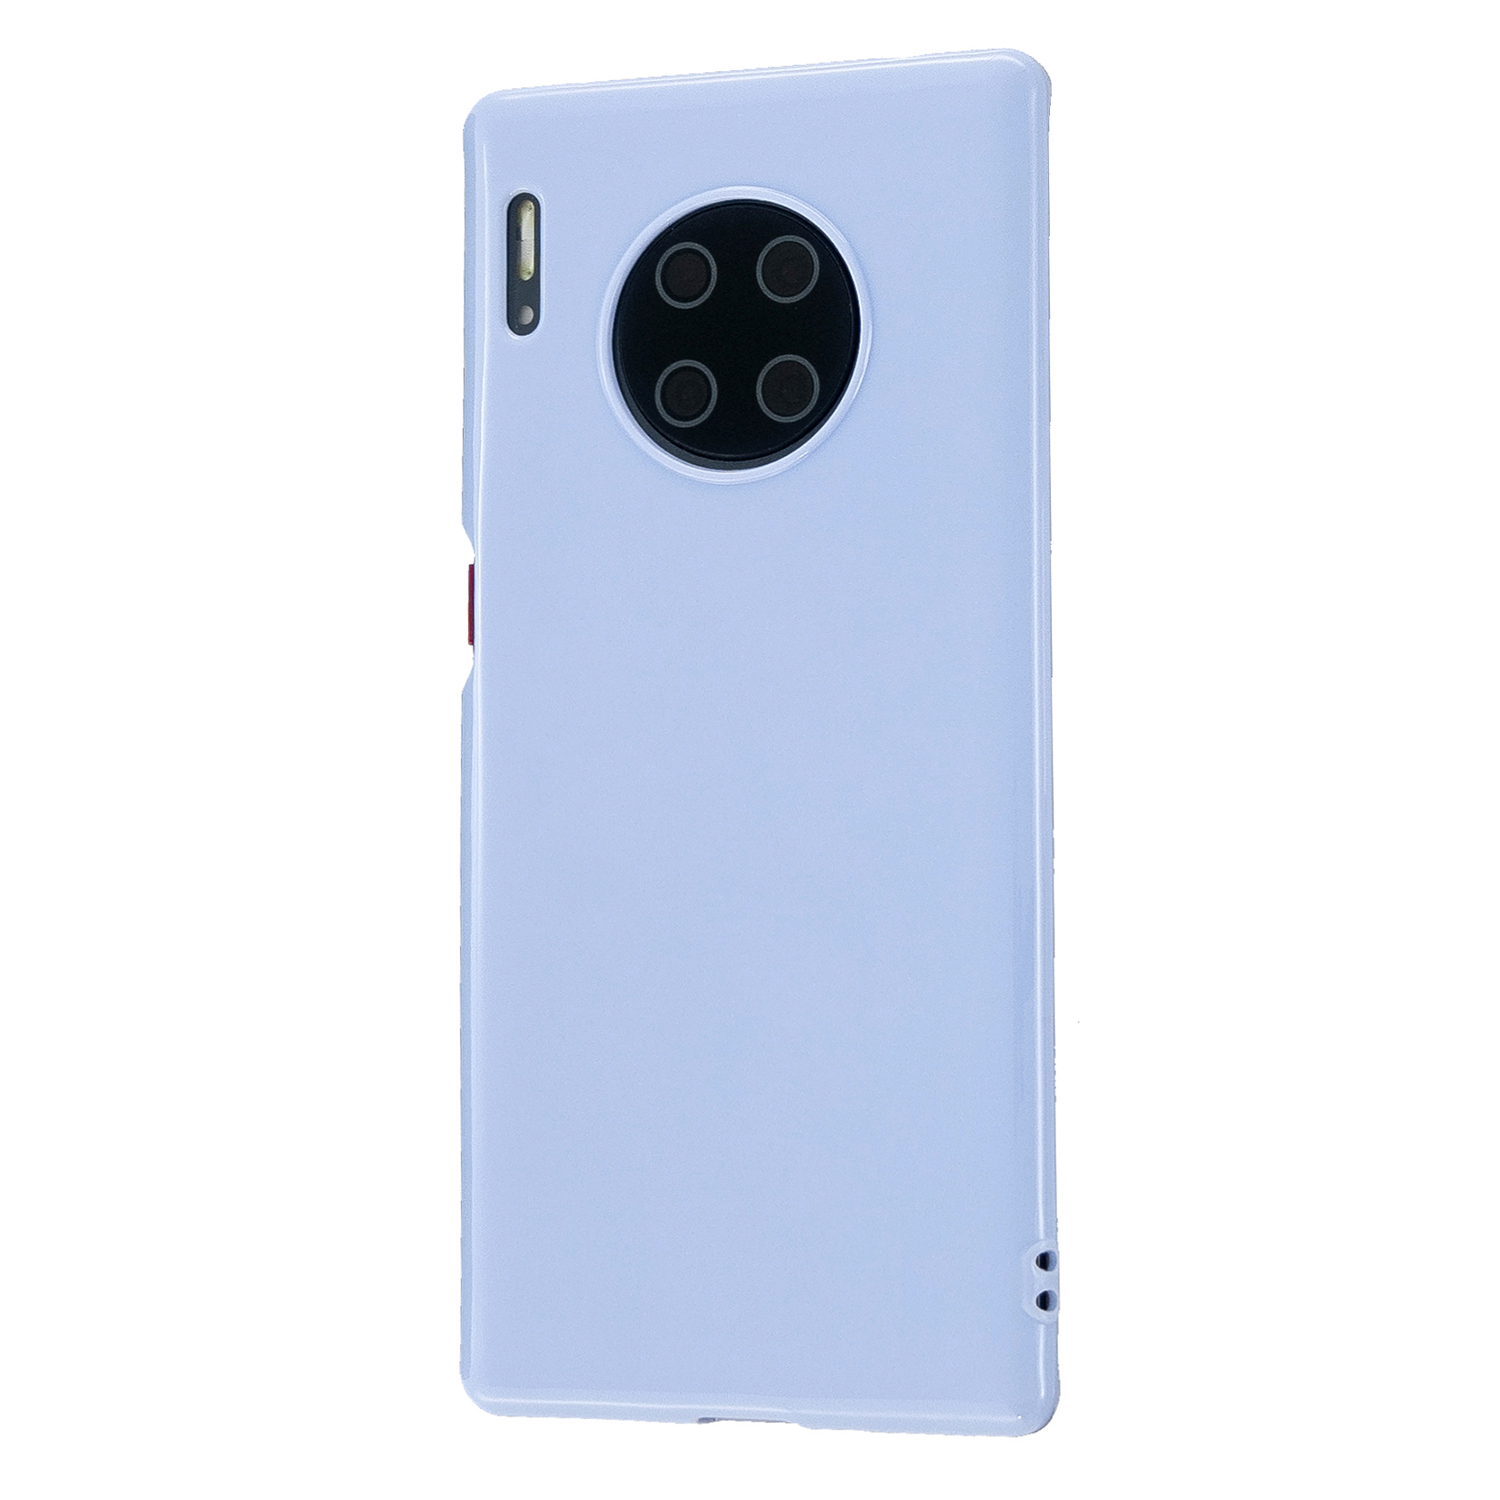 For HUAWEI Mate 30/30 Lite/30 Pro Cellphone Case Simple Profile Soft TPU Shock-Absorption Phone Cover Taro purple